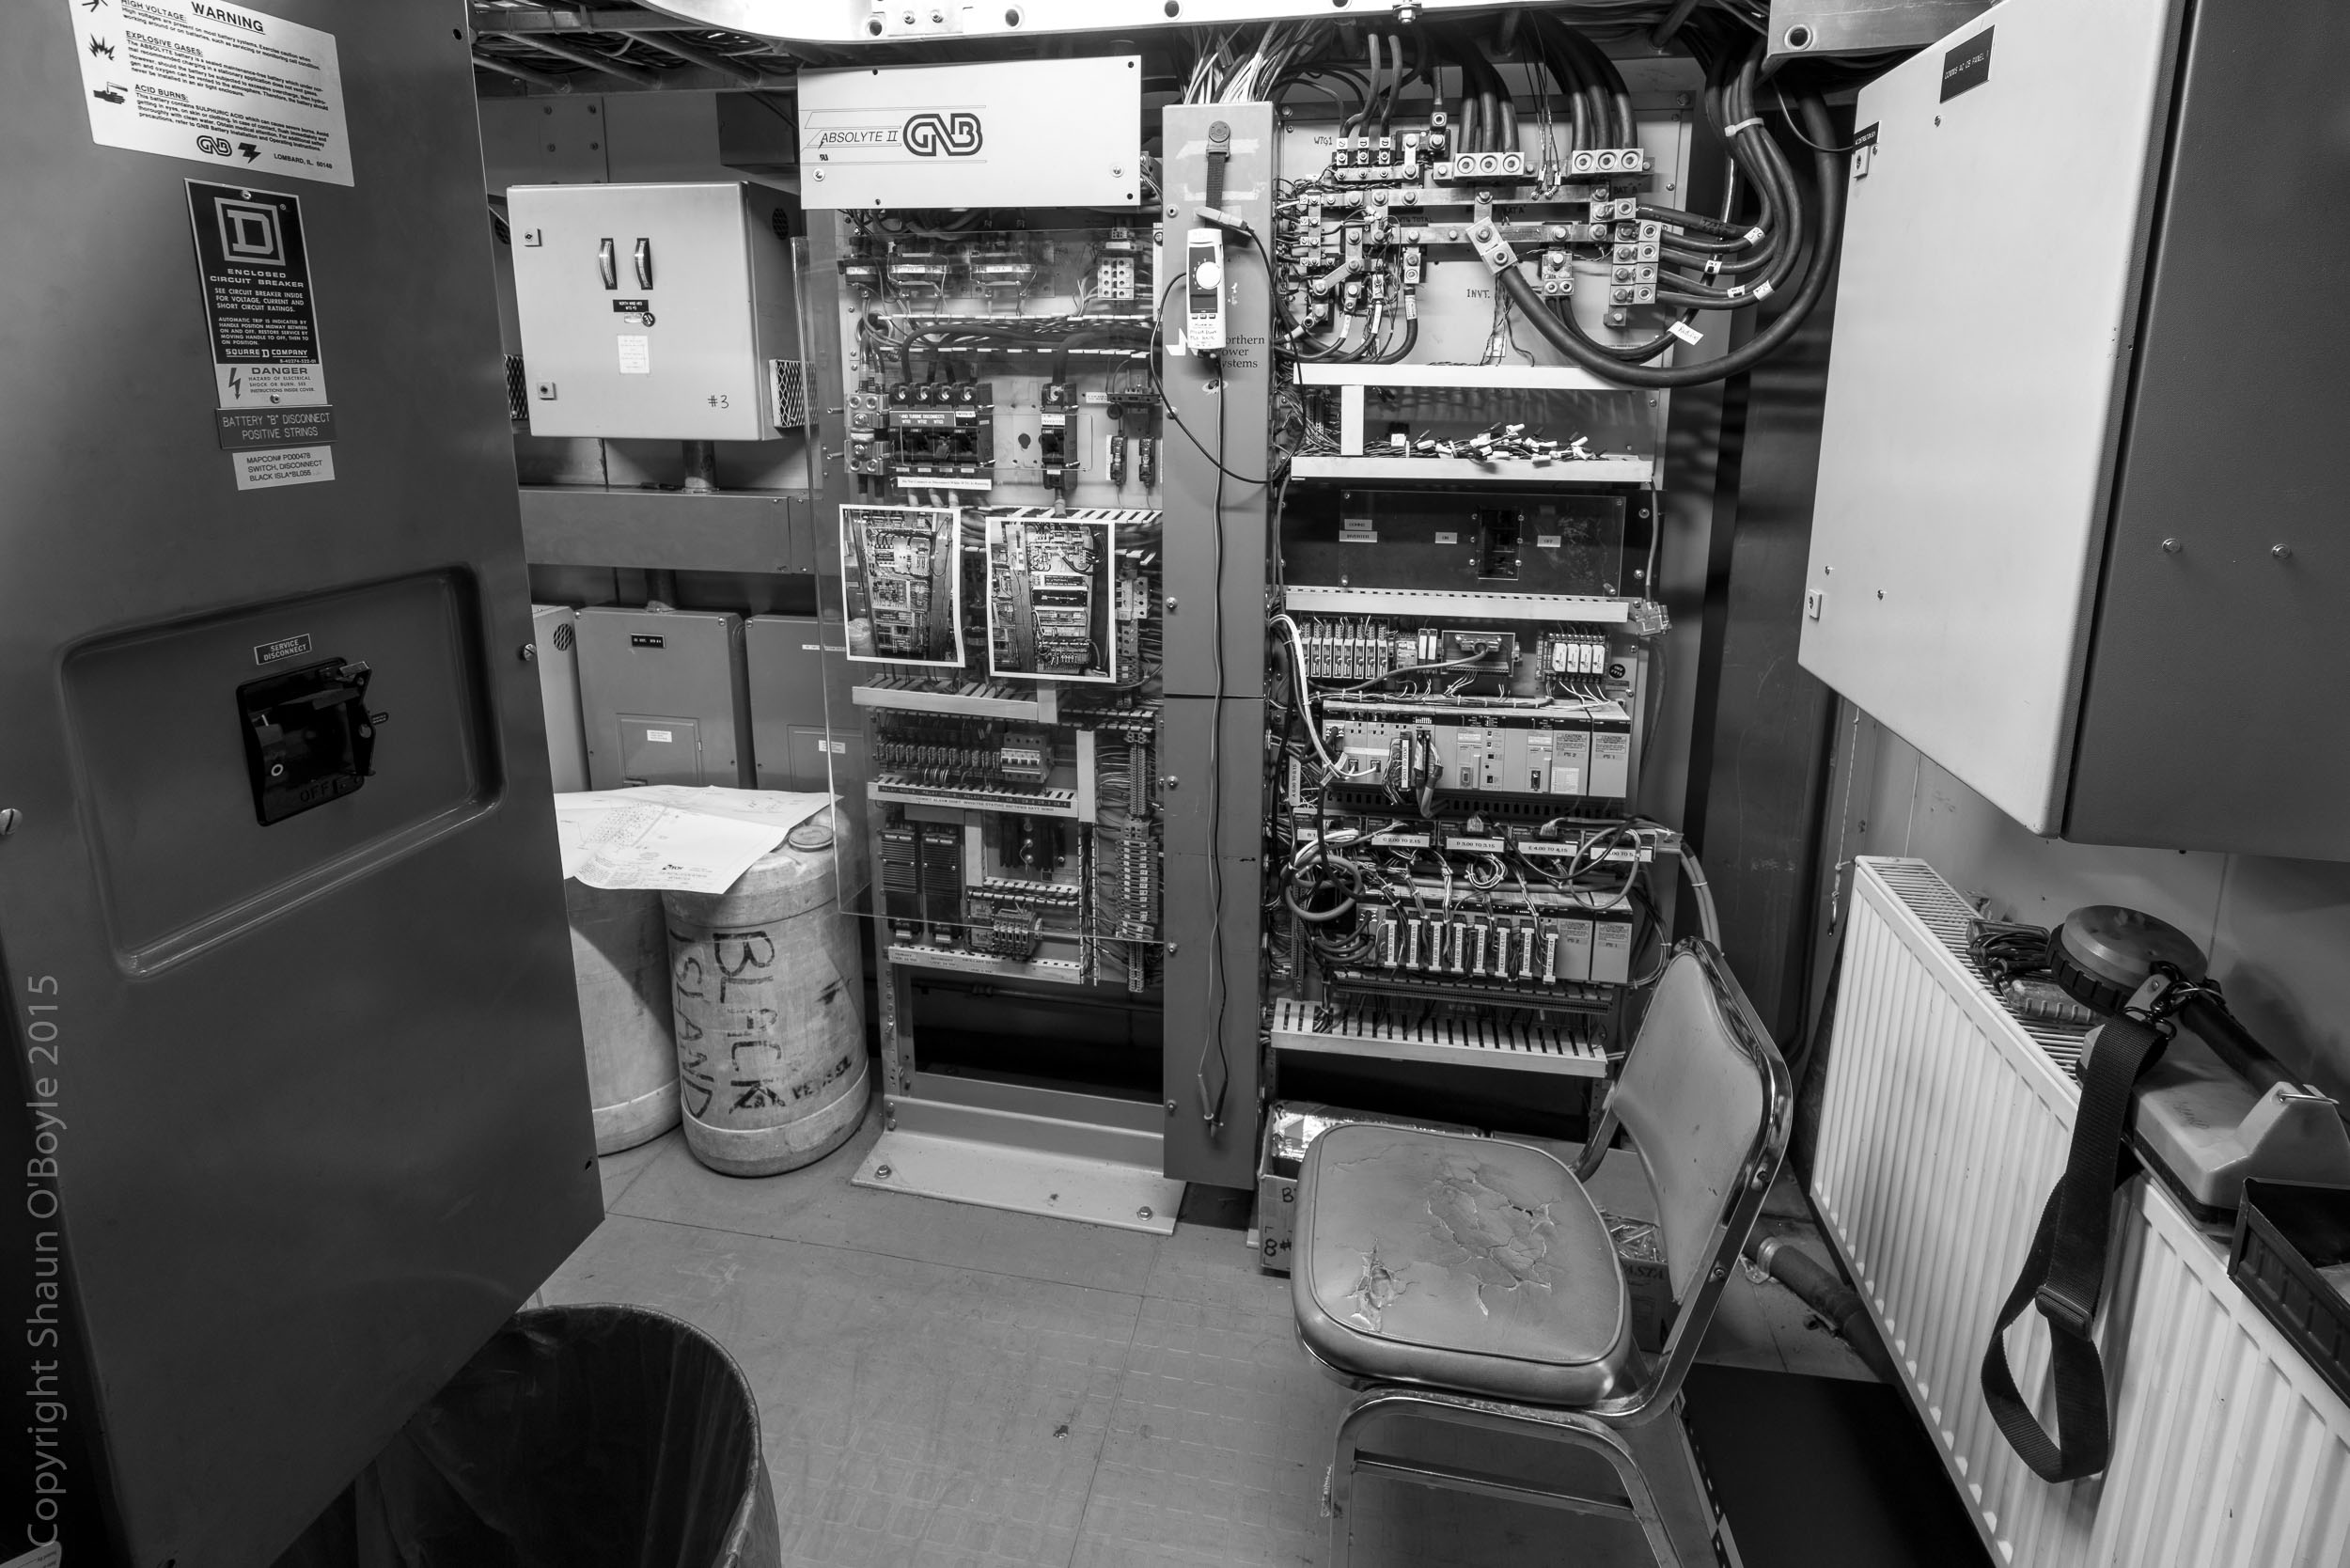 The station handles all McMurdo communications with the outside world via satellite, so some very complex telecommunications and electrical equipment on hand. It was rumored that the station was going to be replaced within a few years with equipment located on Ross Island.